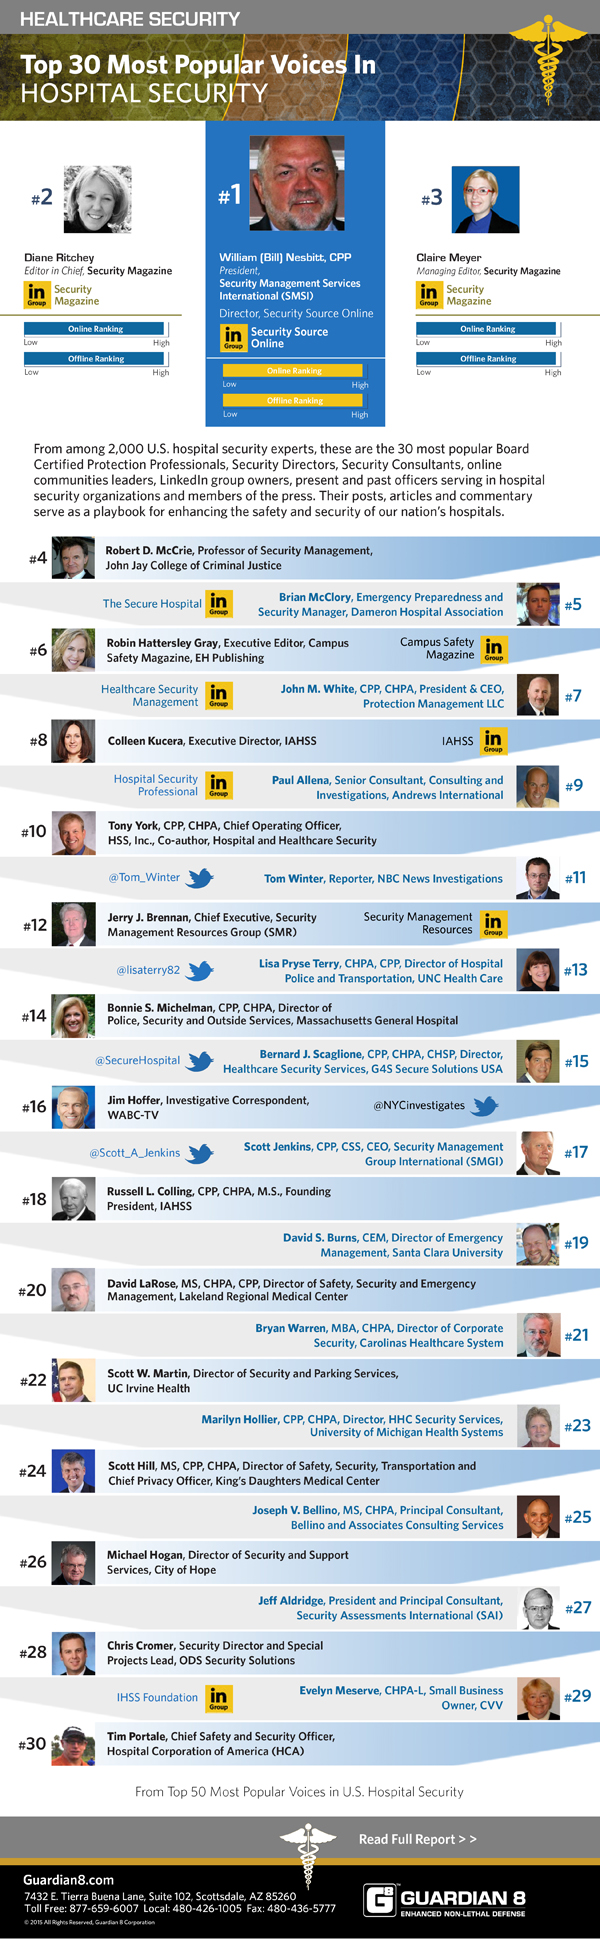 top 30 healthcare security influencers